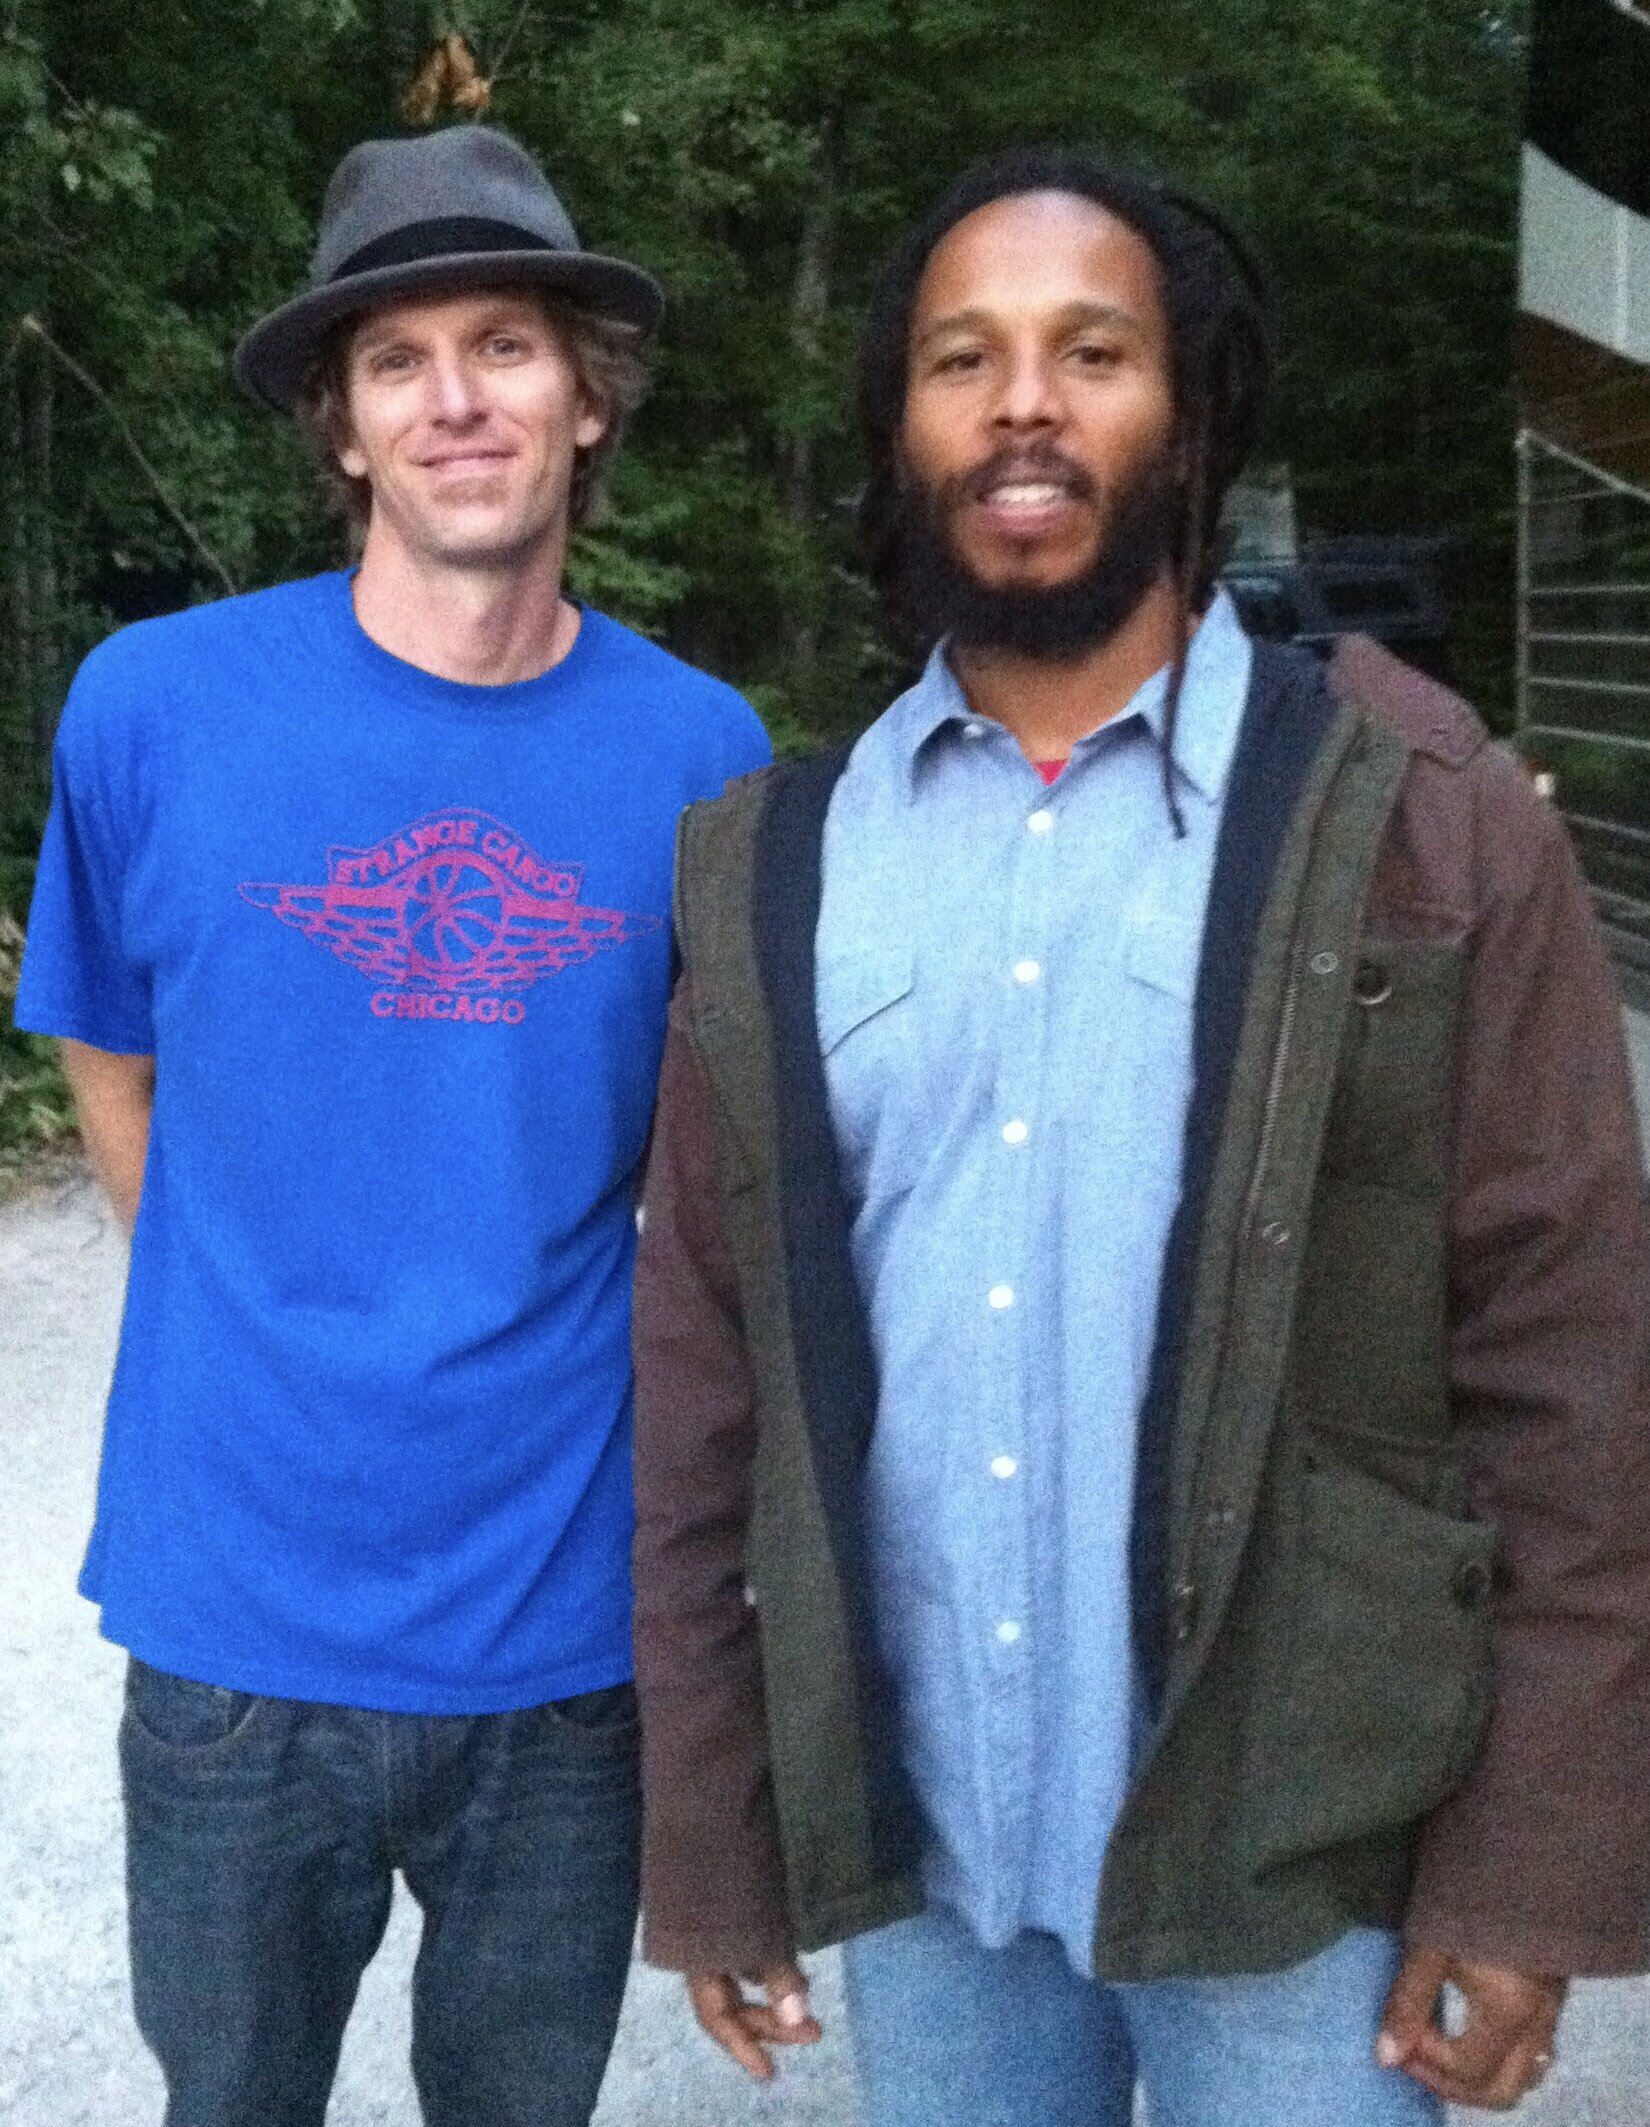 Teague Alexy & Ziggy Marley August 9, 2014 Bayfield, WI